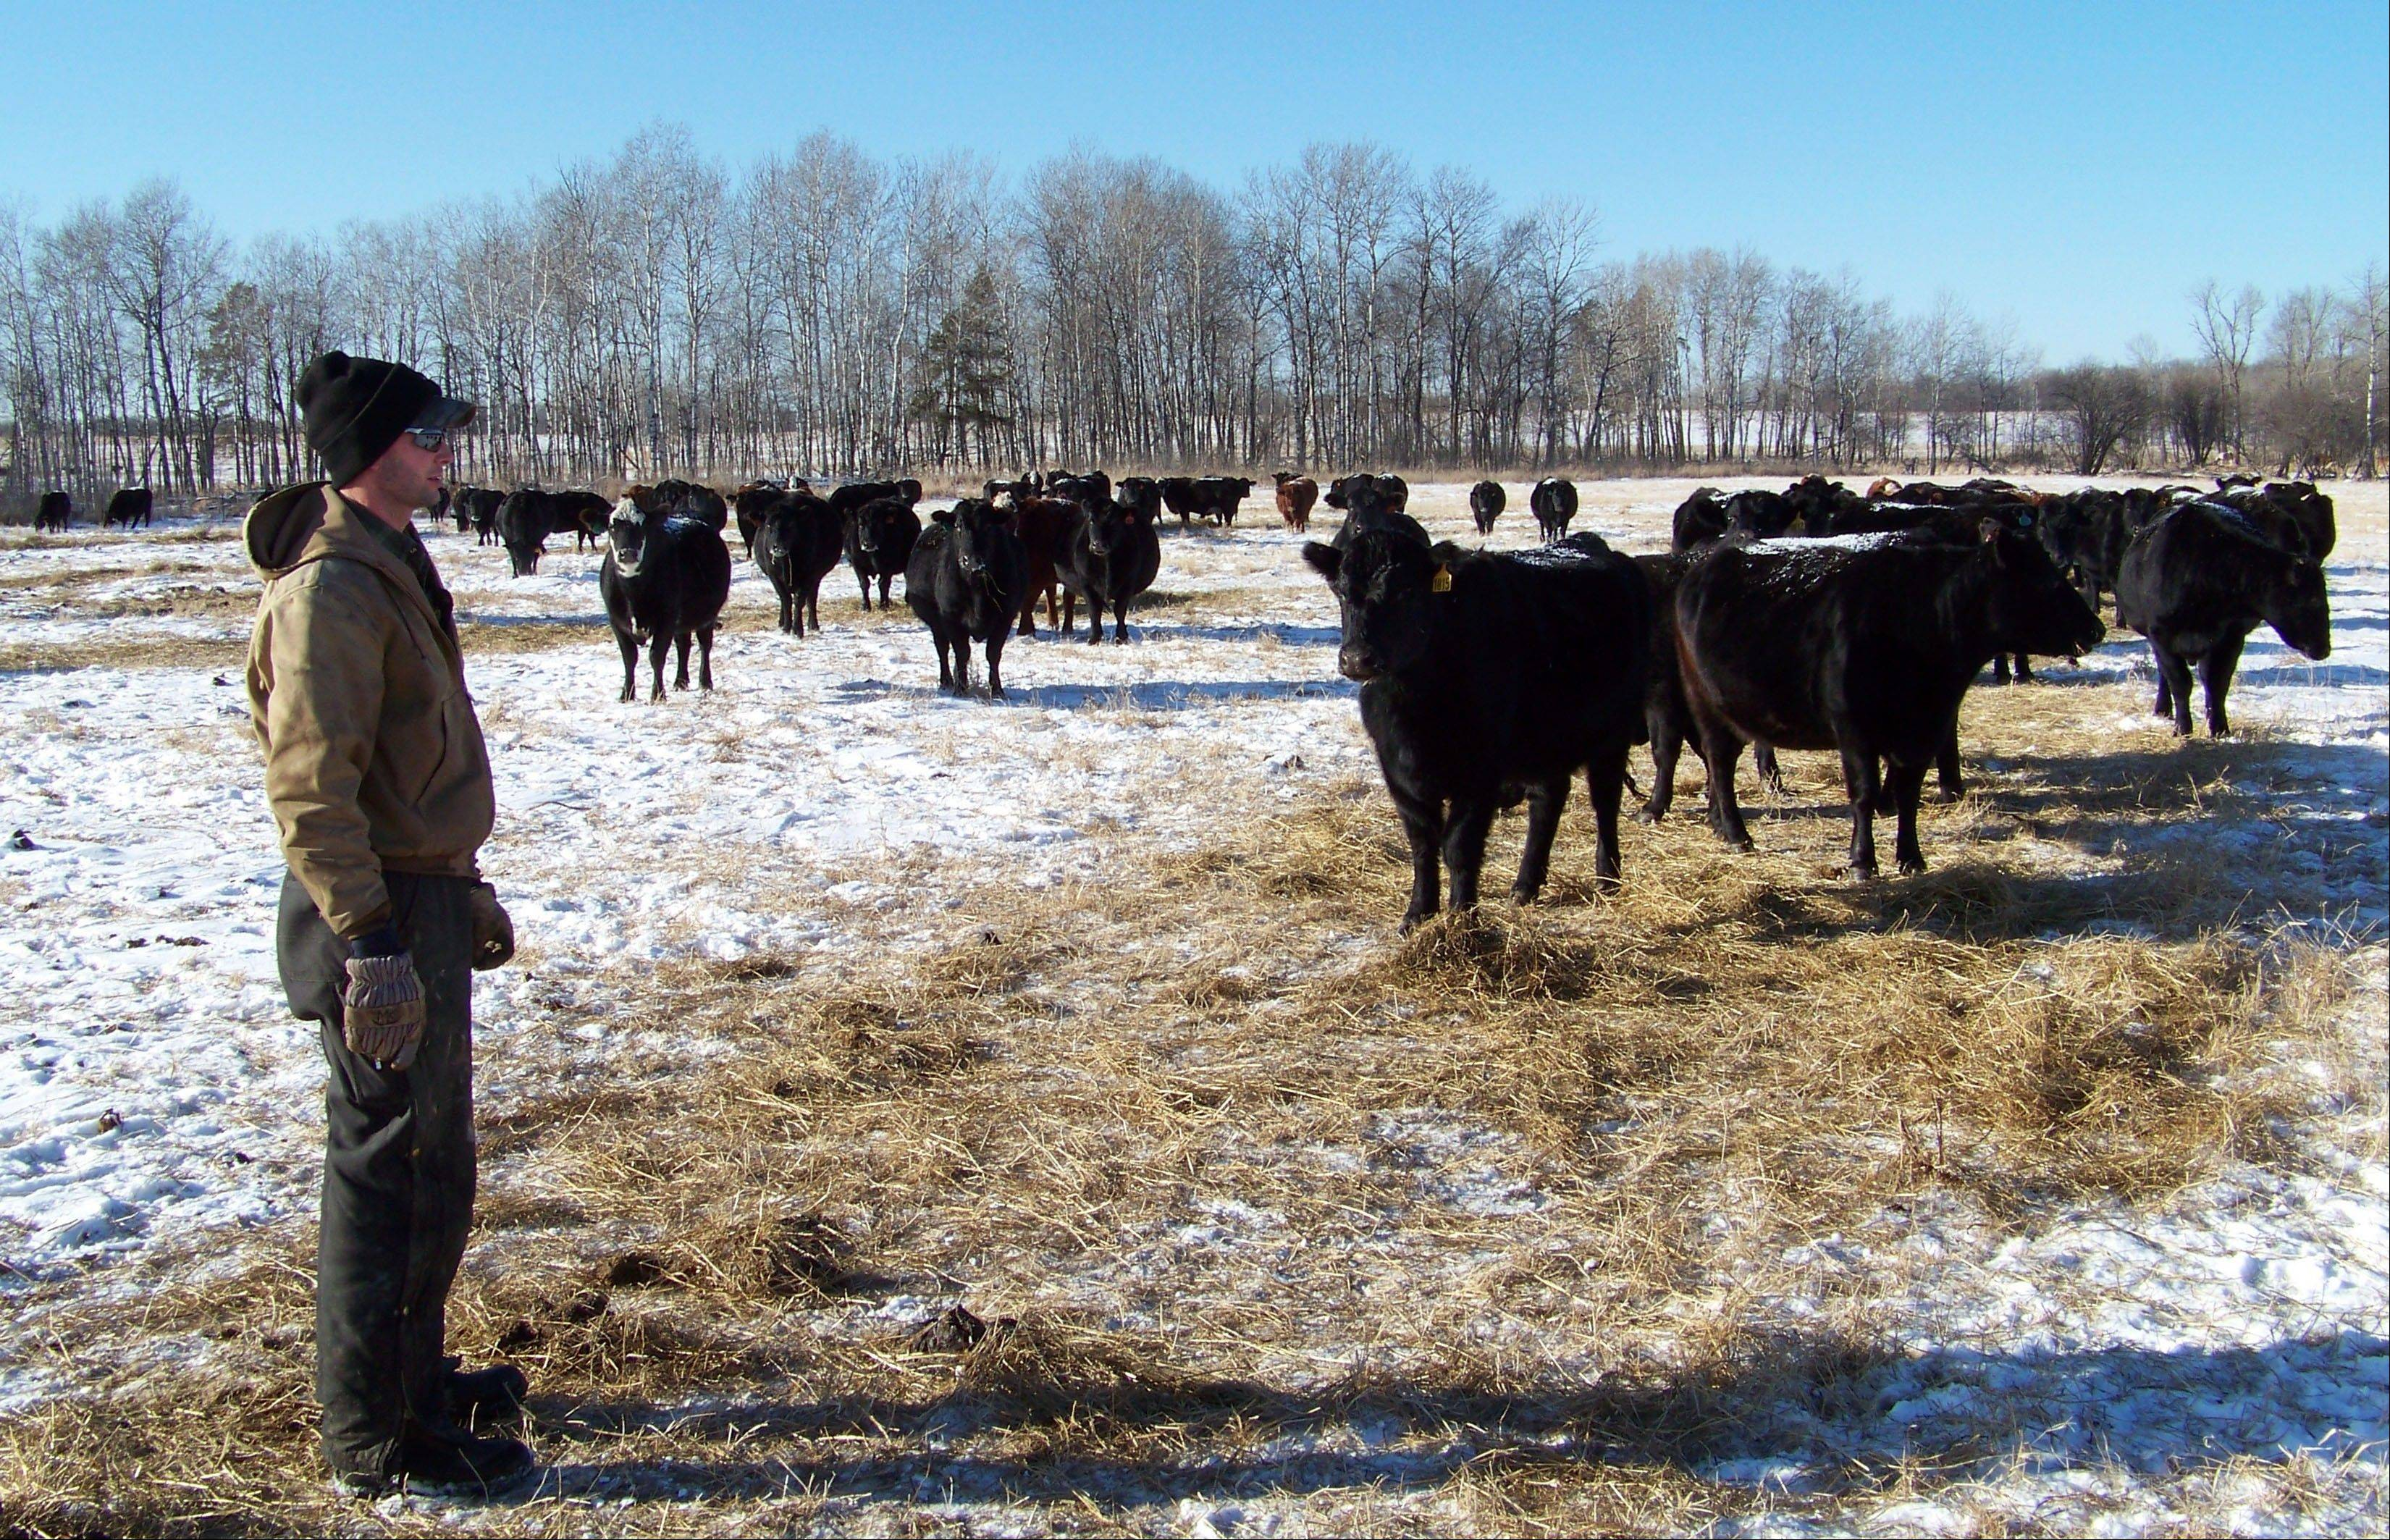 Miles Kuschel checks his herd, which has lost several calves to wolves, on his ranch near Sebeka, Minn. Farmers have long complained about wolves wreaking havoc on their livestock and have been clamoring for states to allow hunting. Now, with government removal of Great Lakes wolves from the endangered species list in January, hunters in Wisconsin and Minnesota are preparing for the states' first organized wolf hunts.